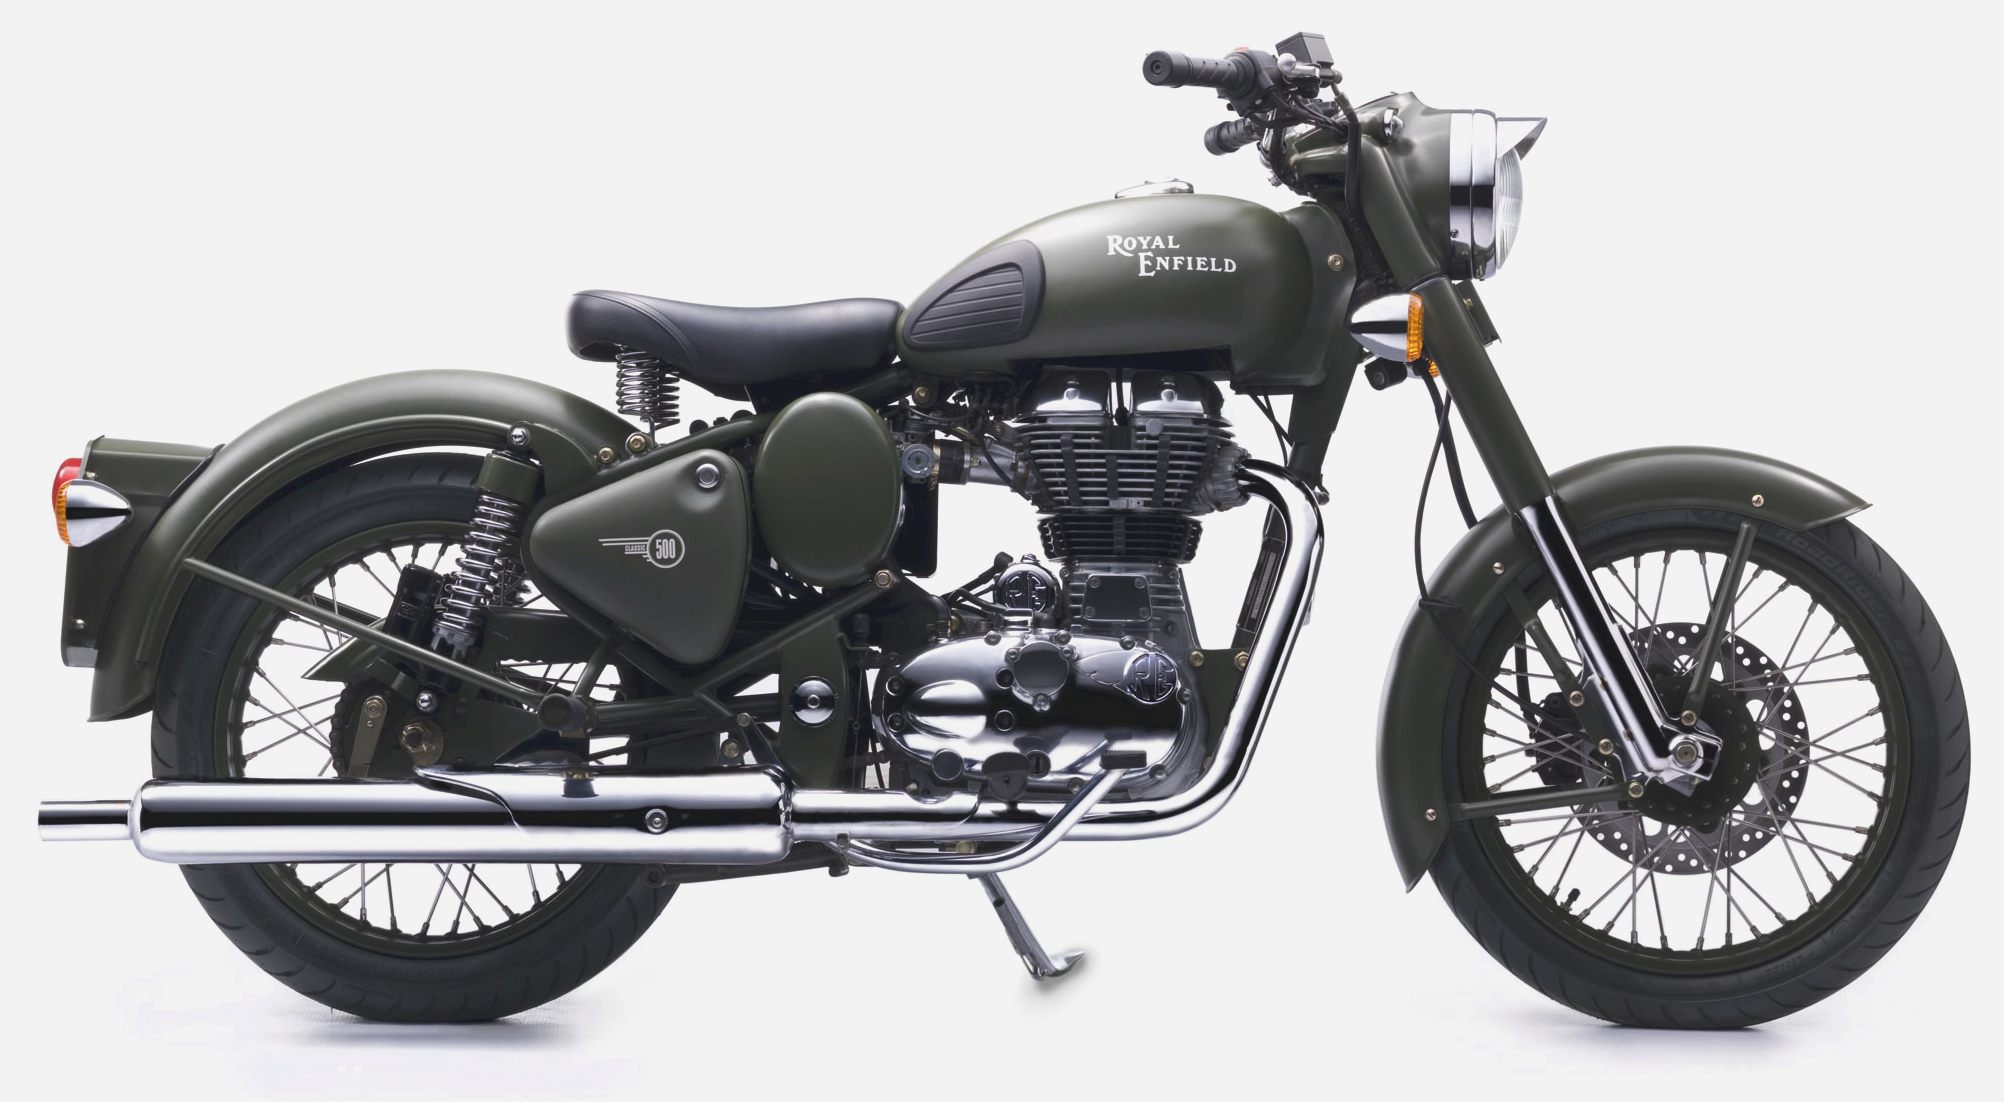 Royal Enfield Bullet C5 Classic EFI 2010 images #127522